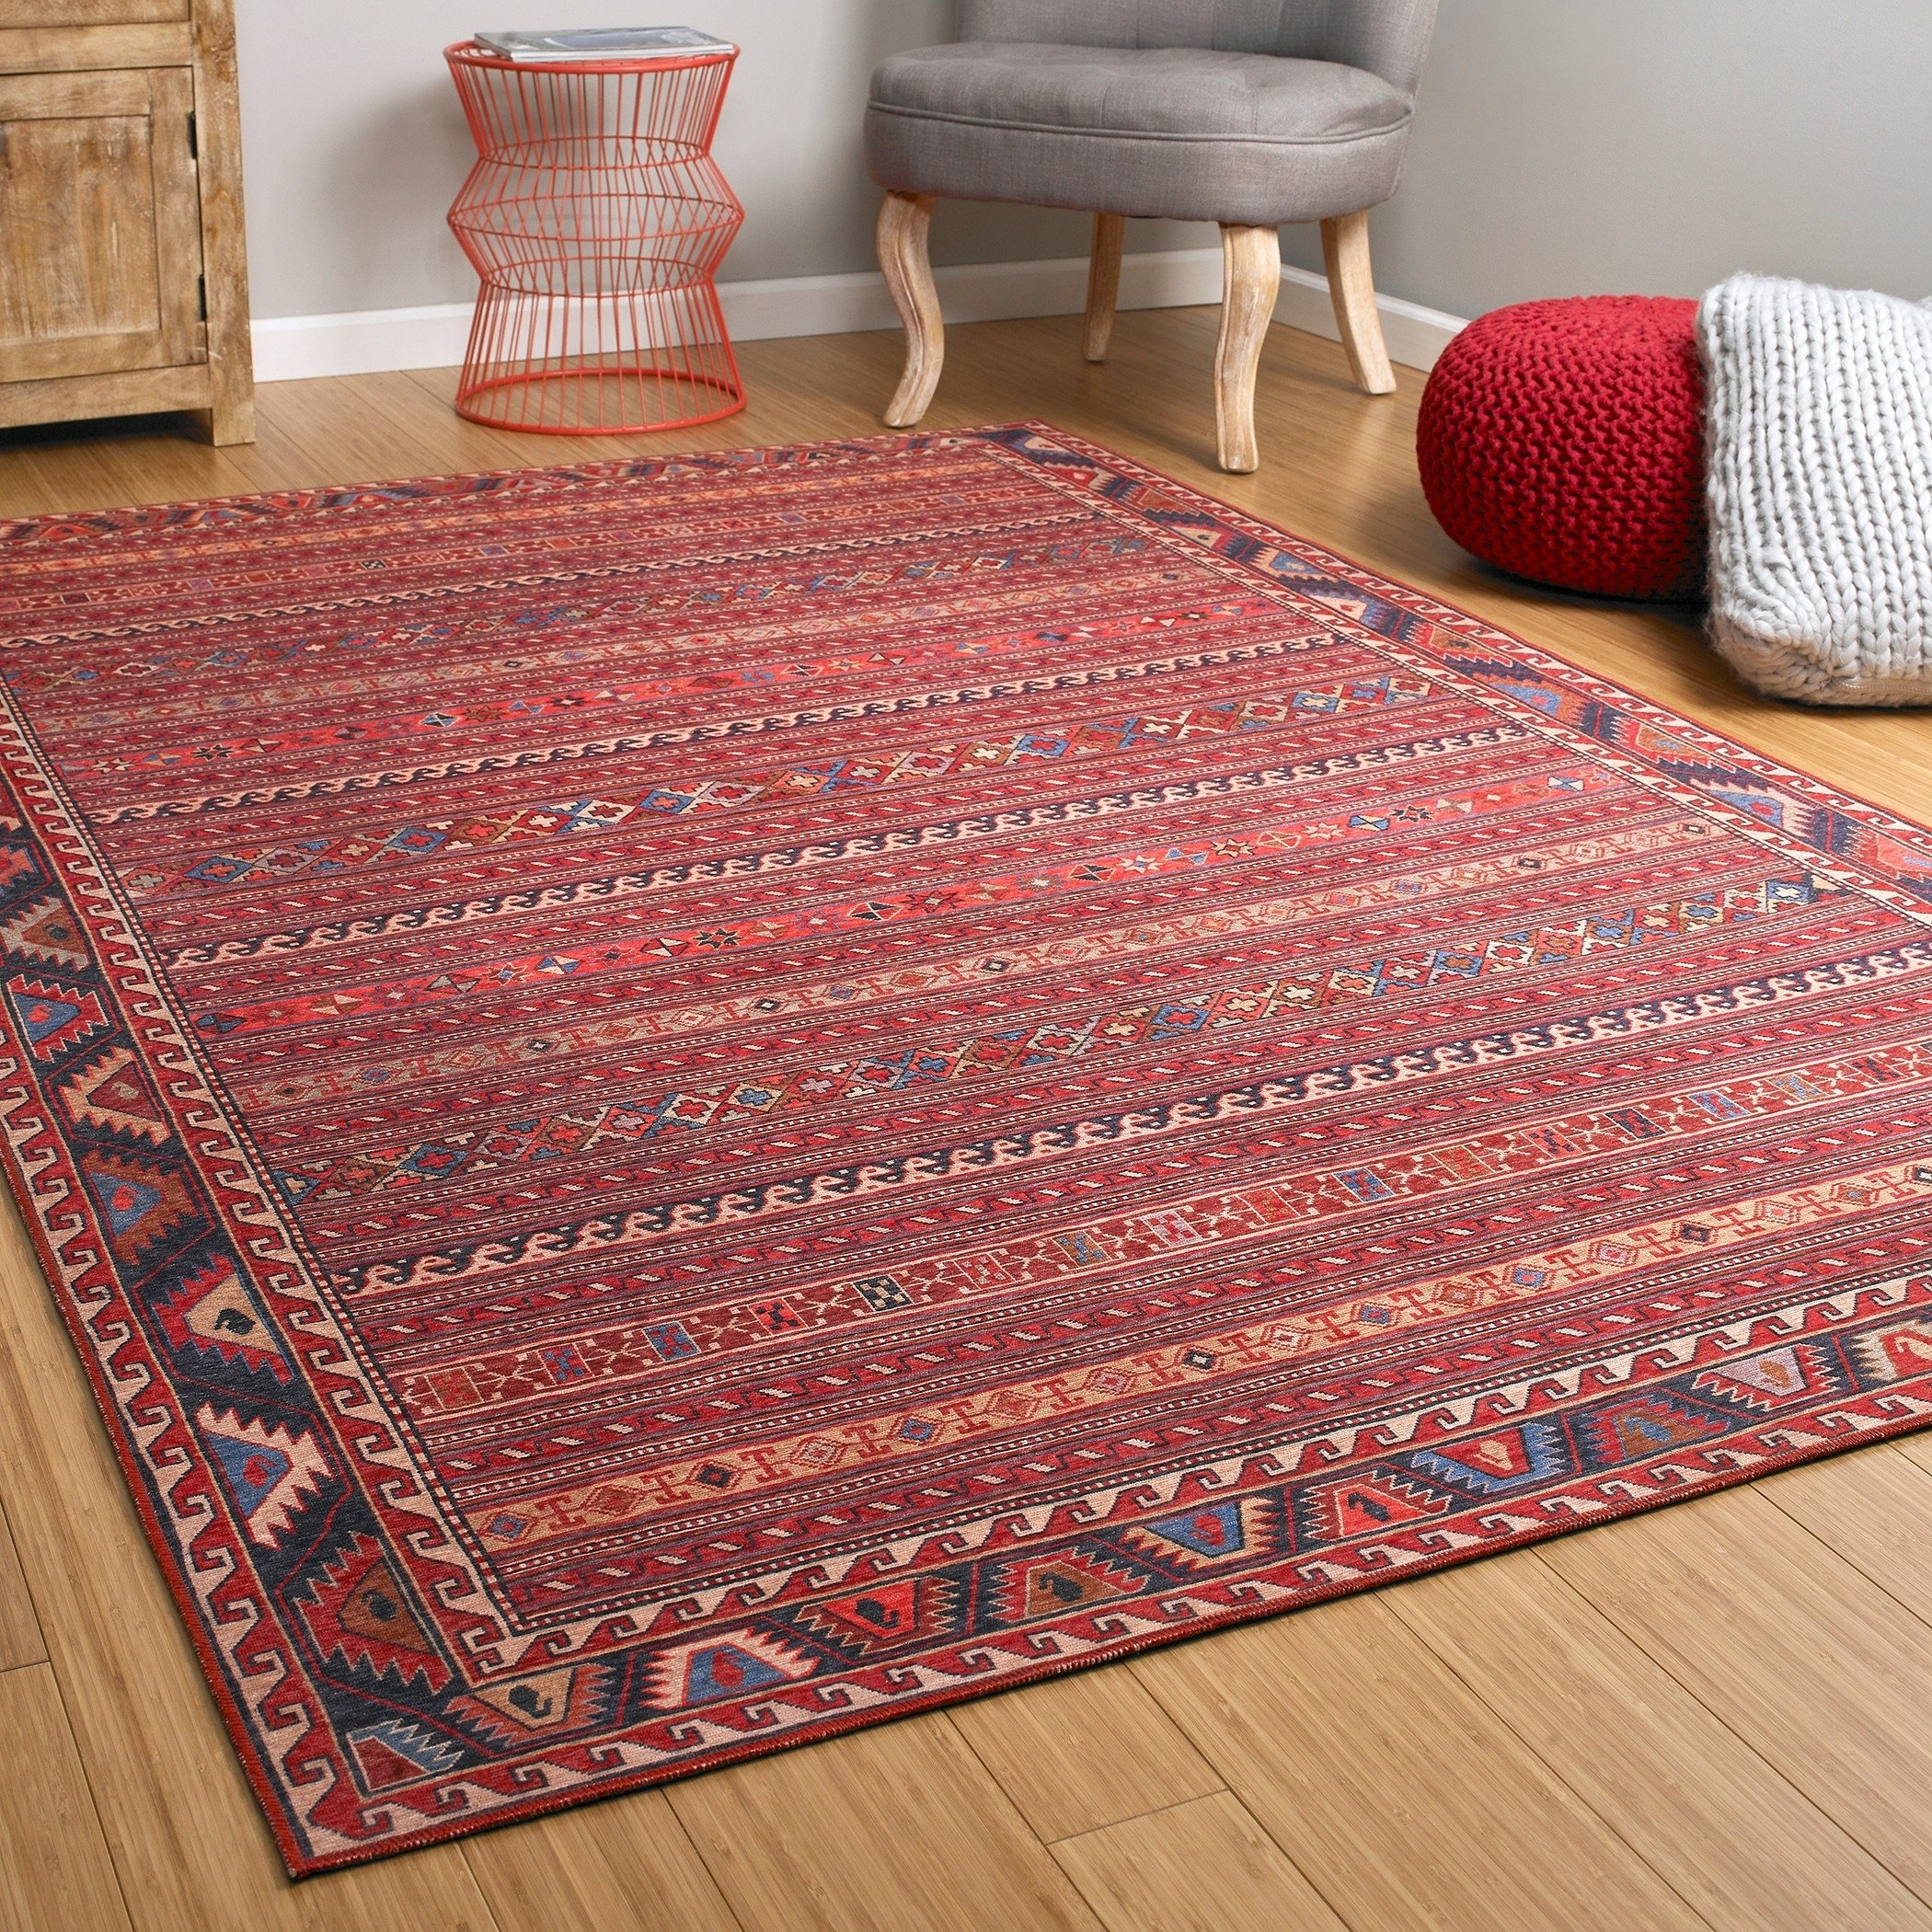 Ballard Vintage Printed Replica Indoor Outdoor Rug Red 5 X 7 6